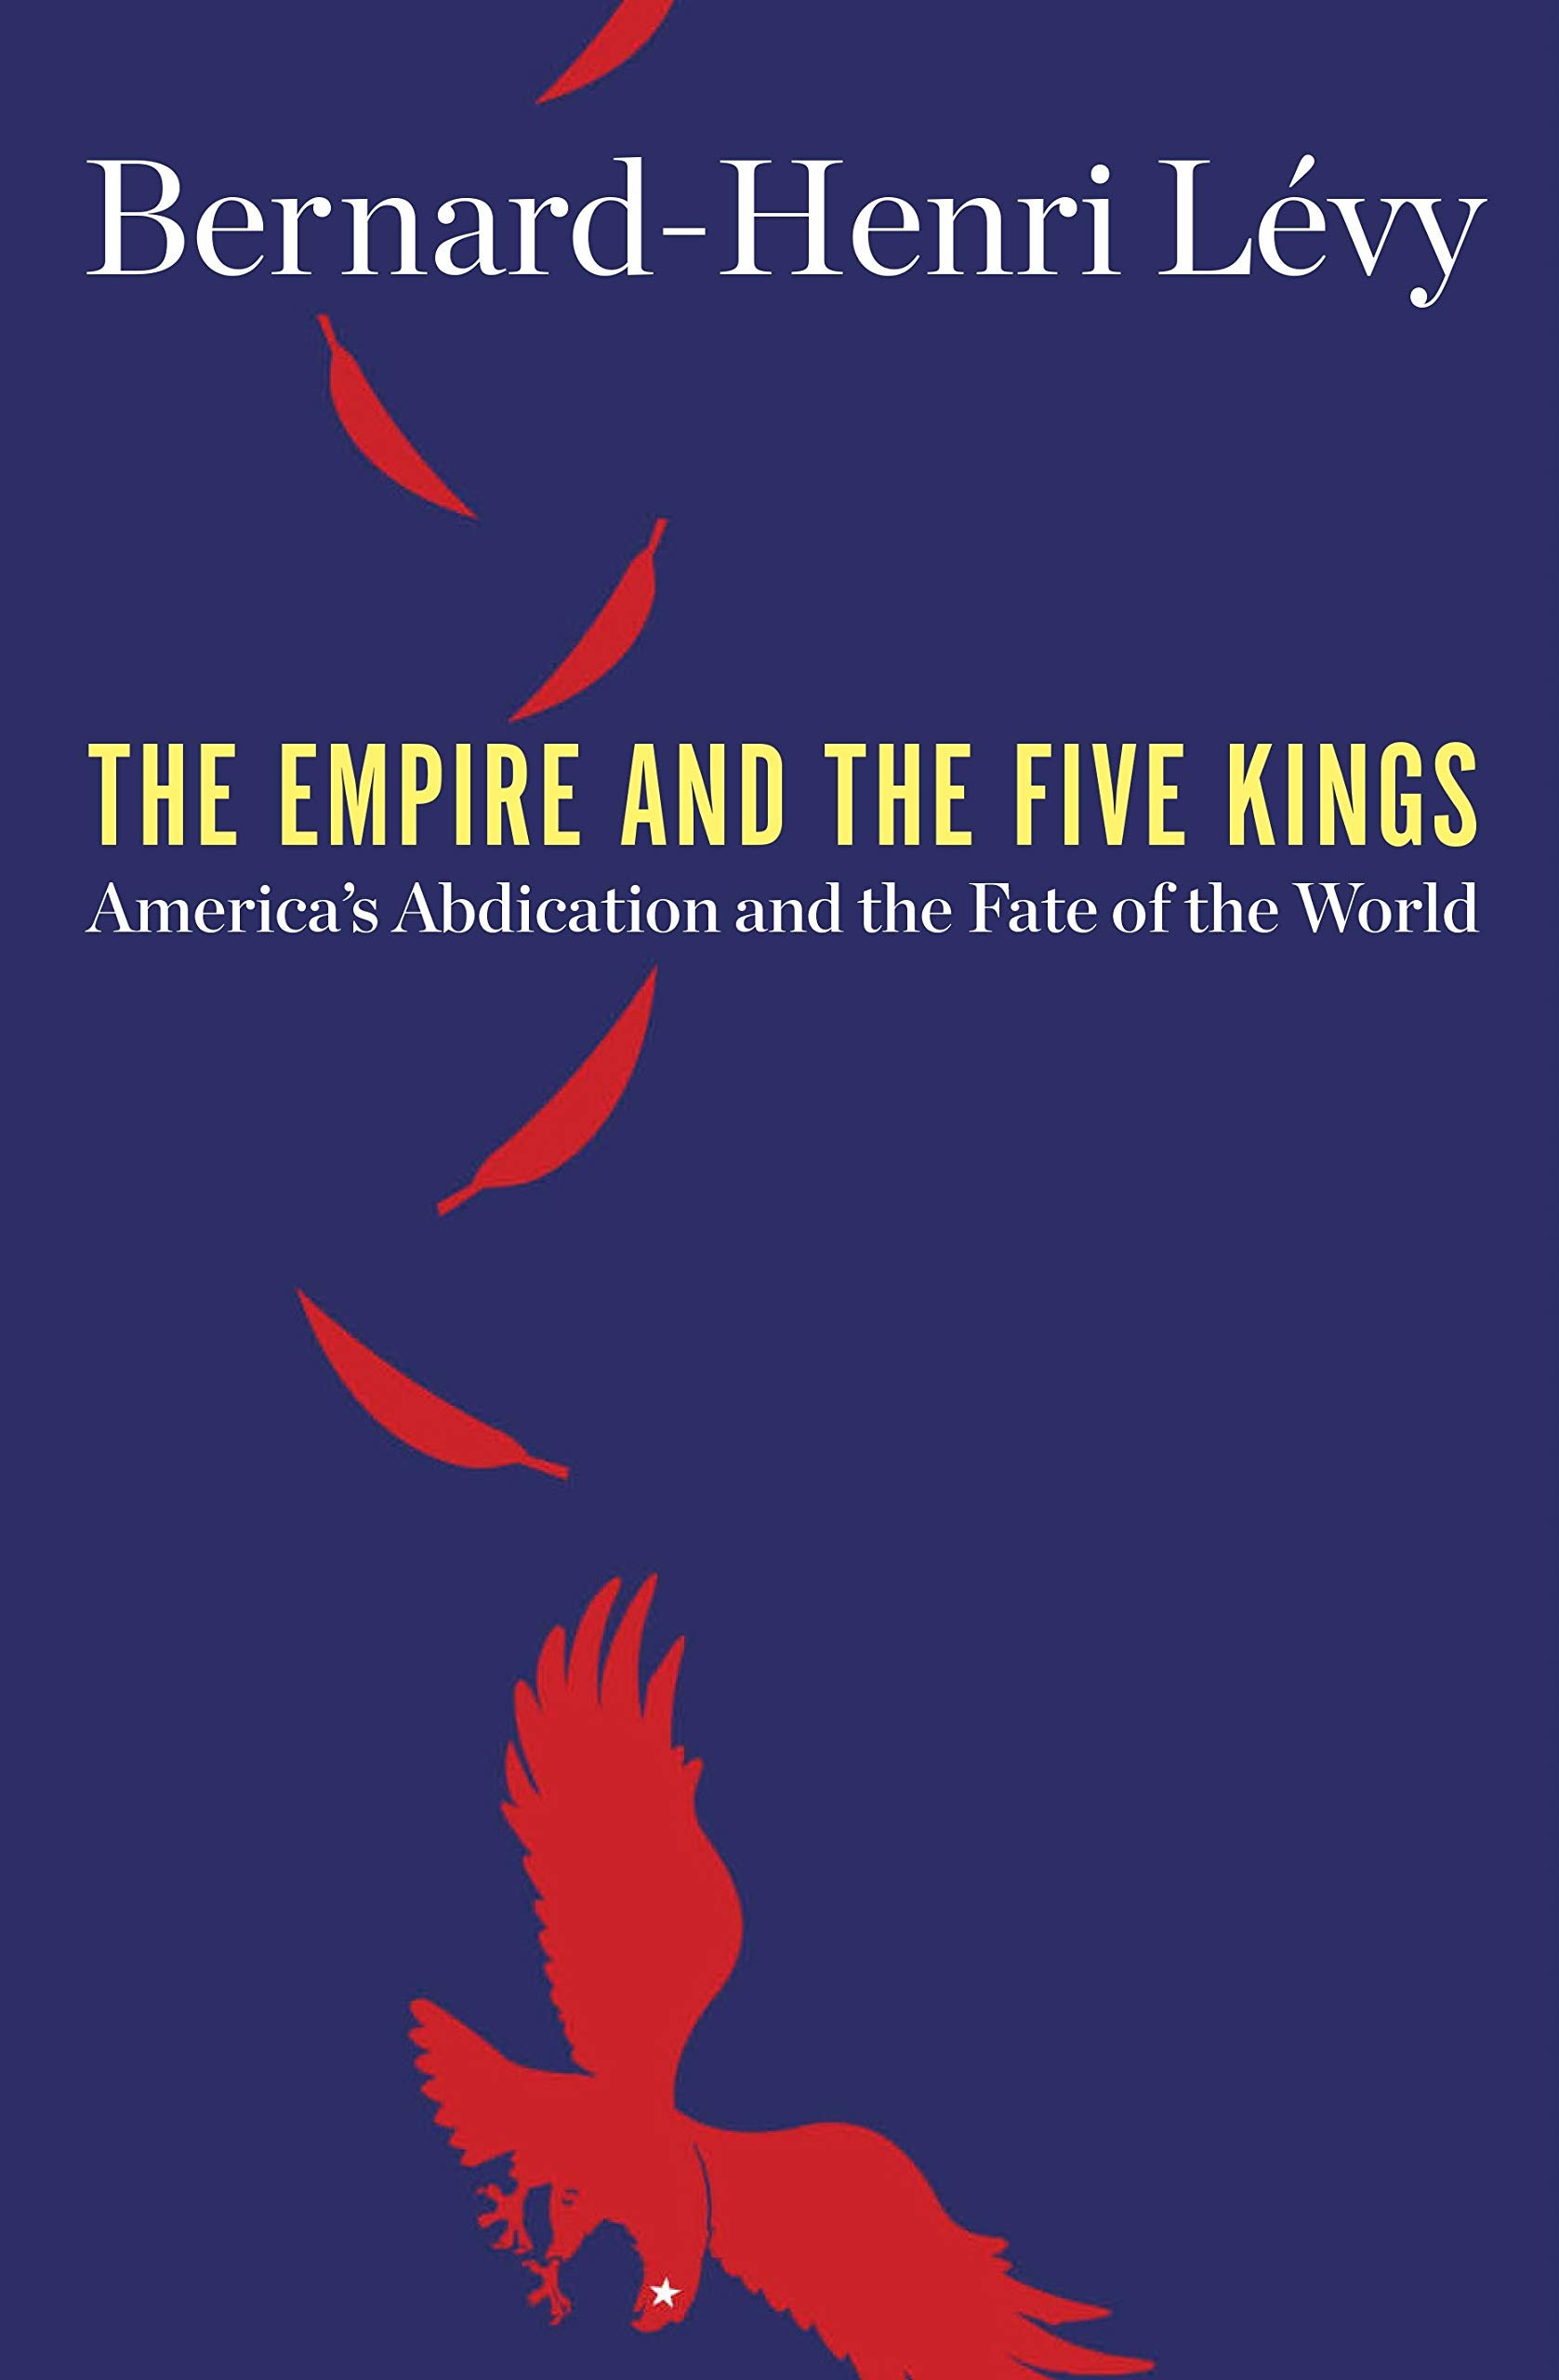 The Empire and the Five Kings: America's Abdication and the